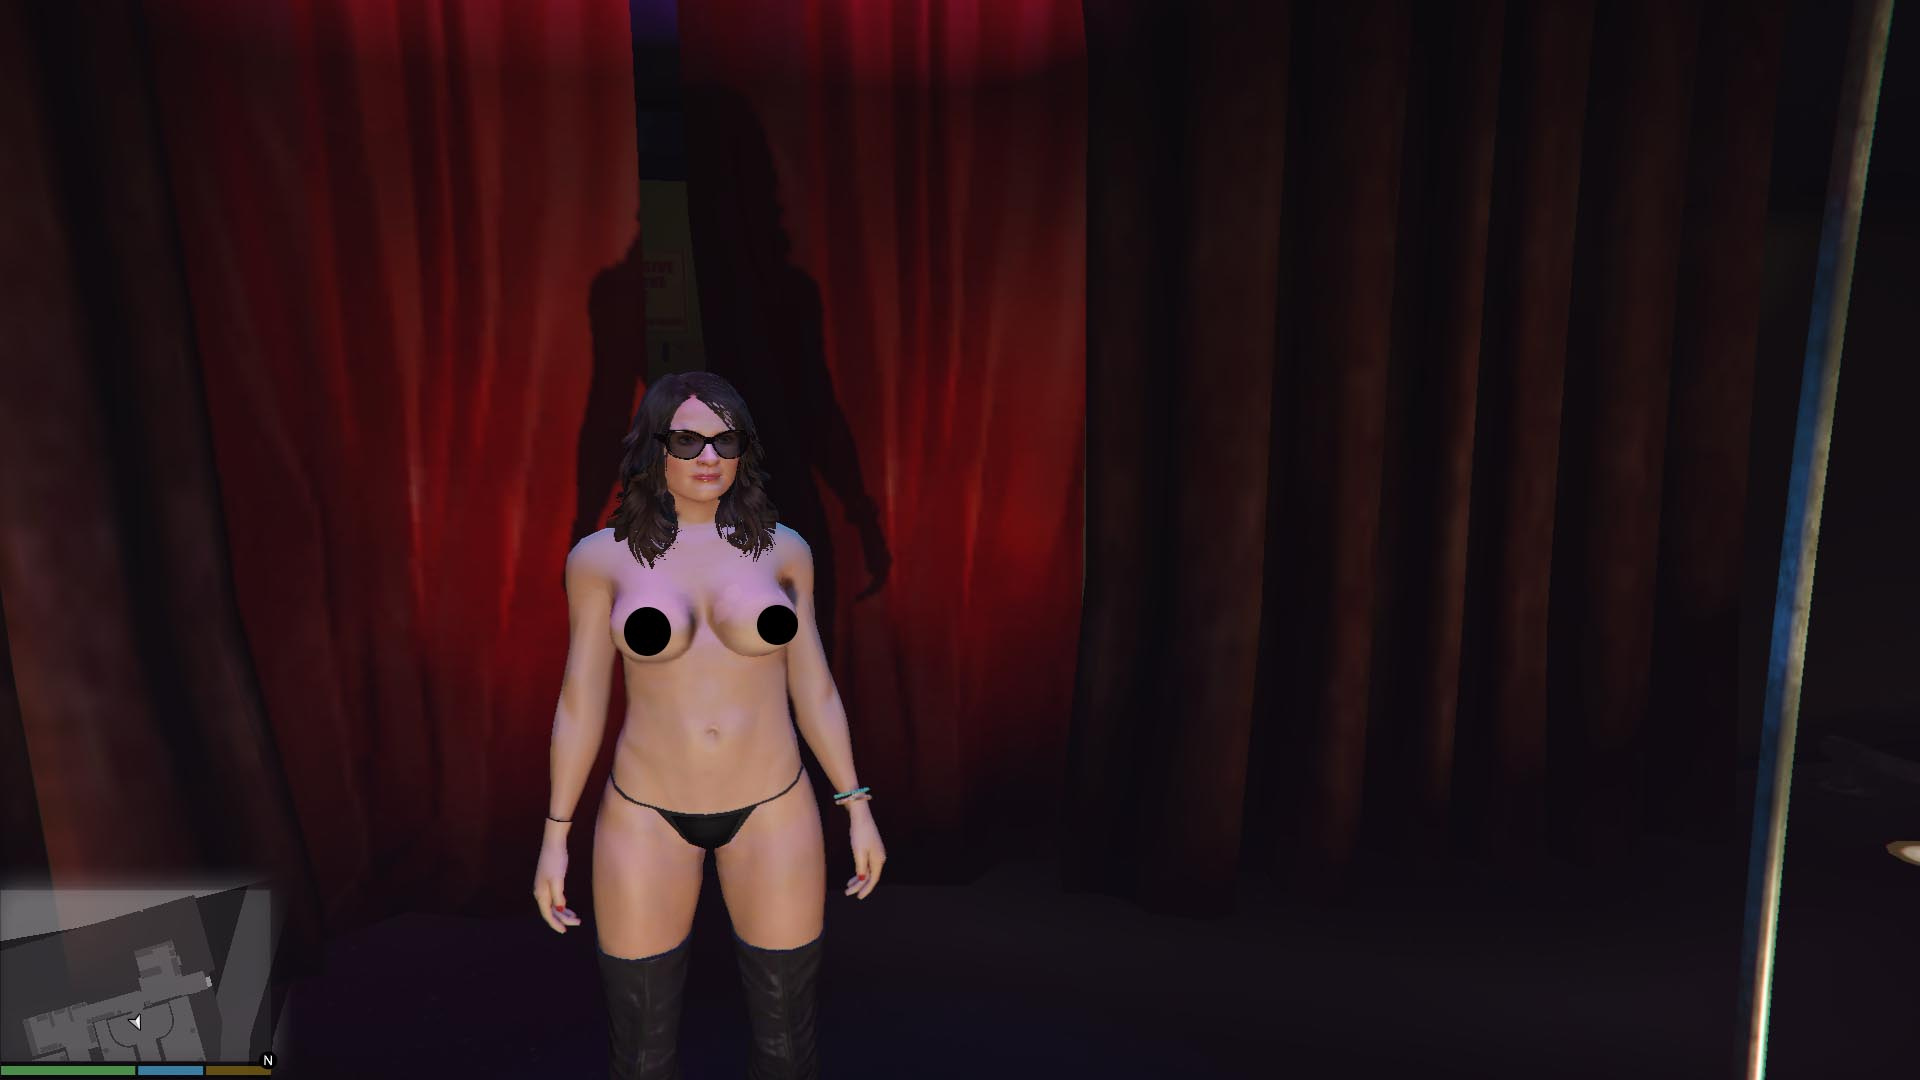 Cheaply gta 5 nude mod with you